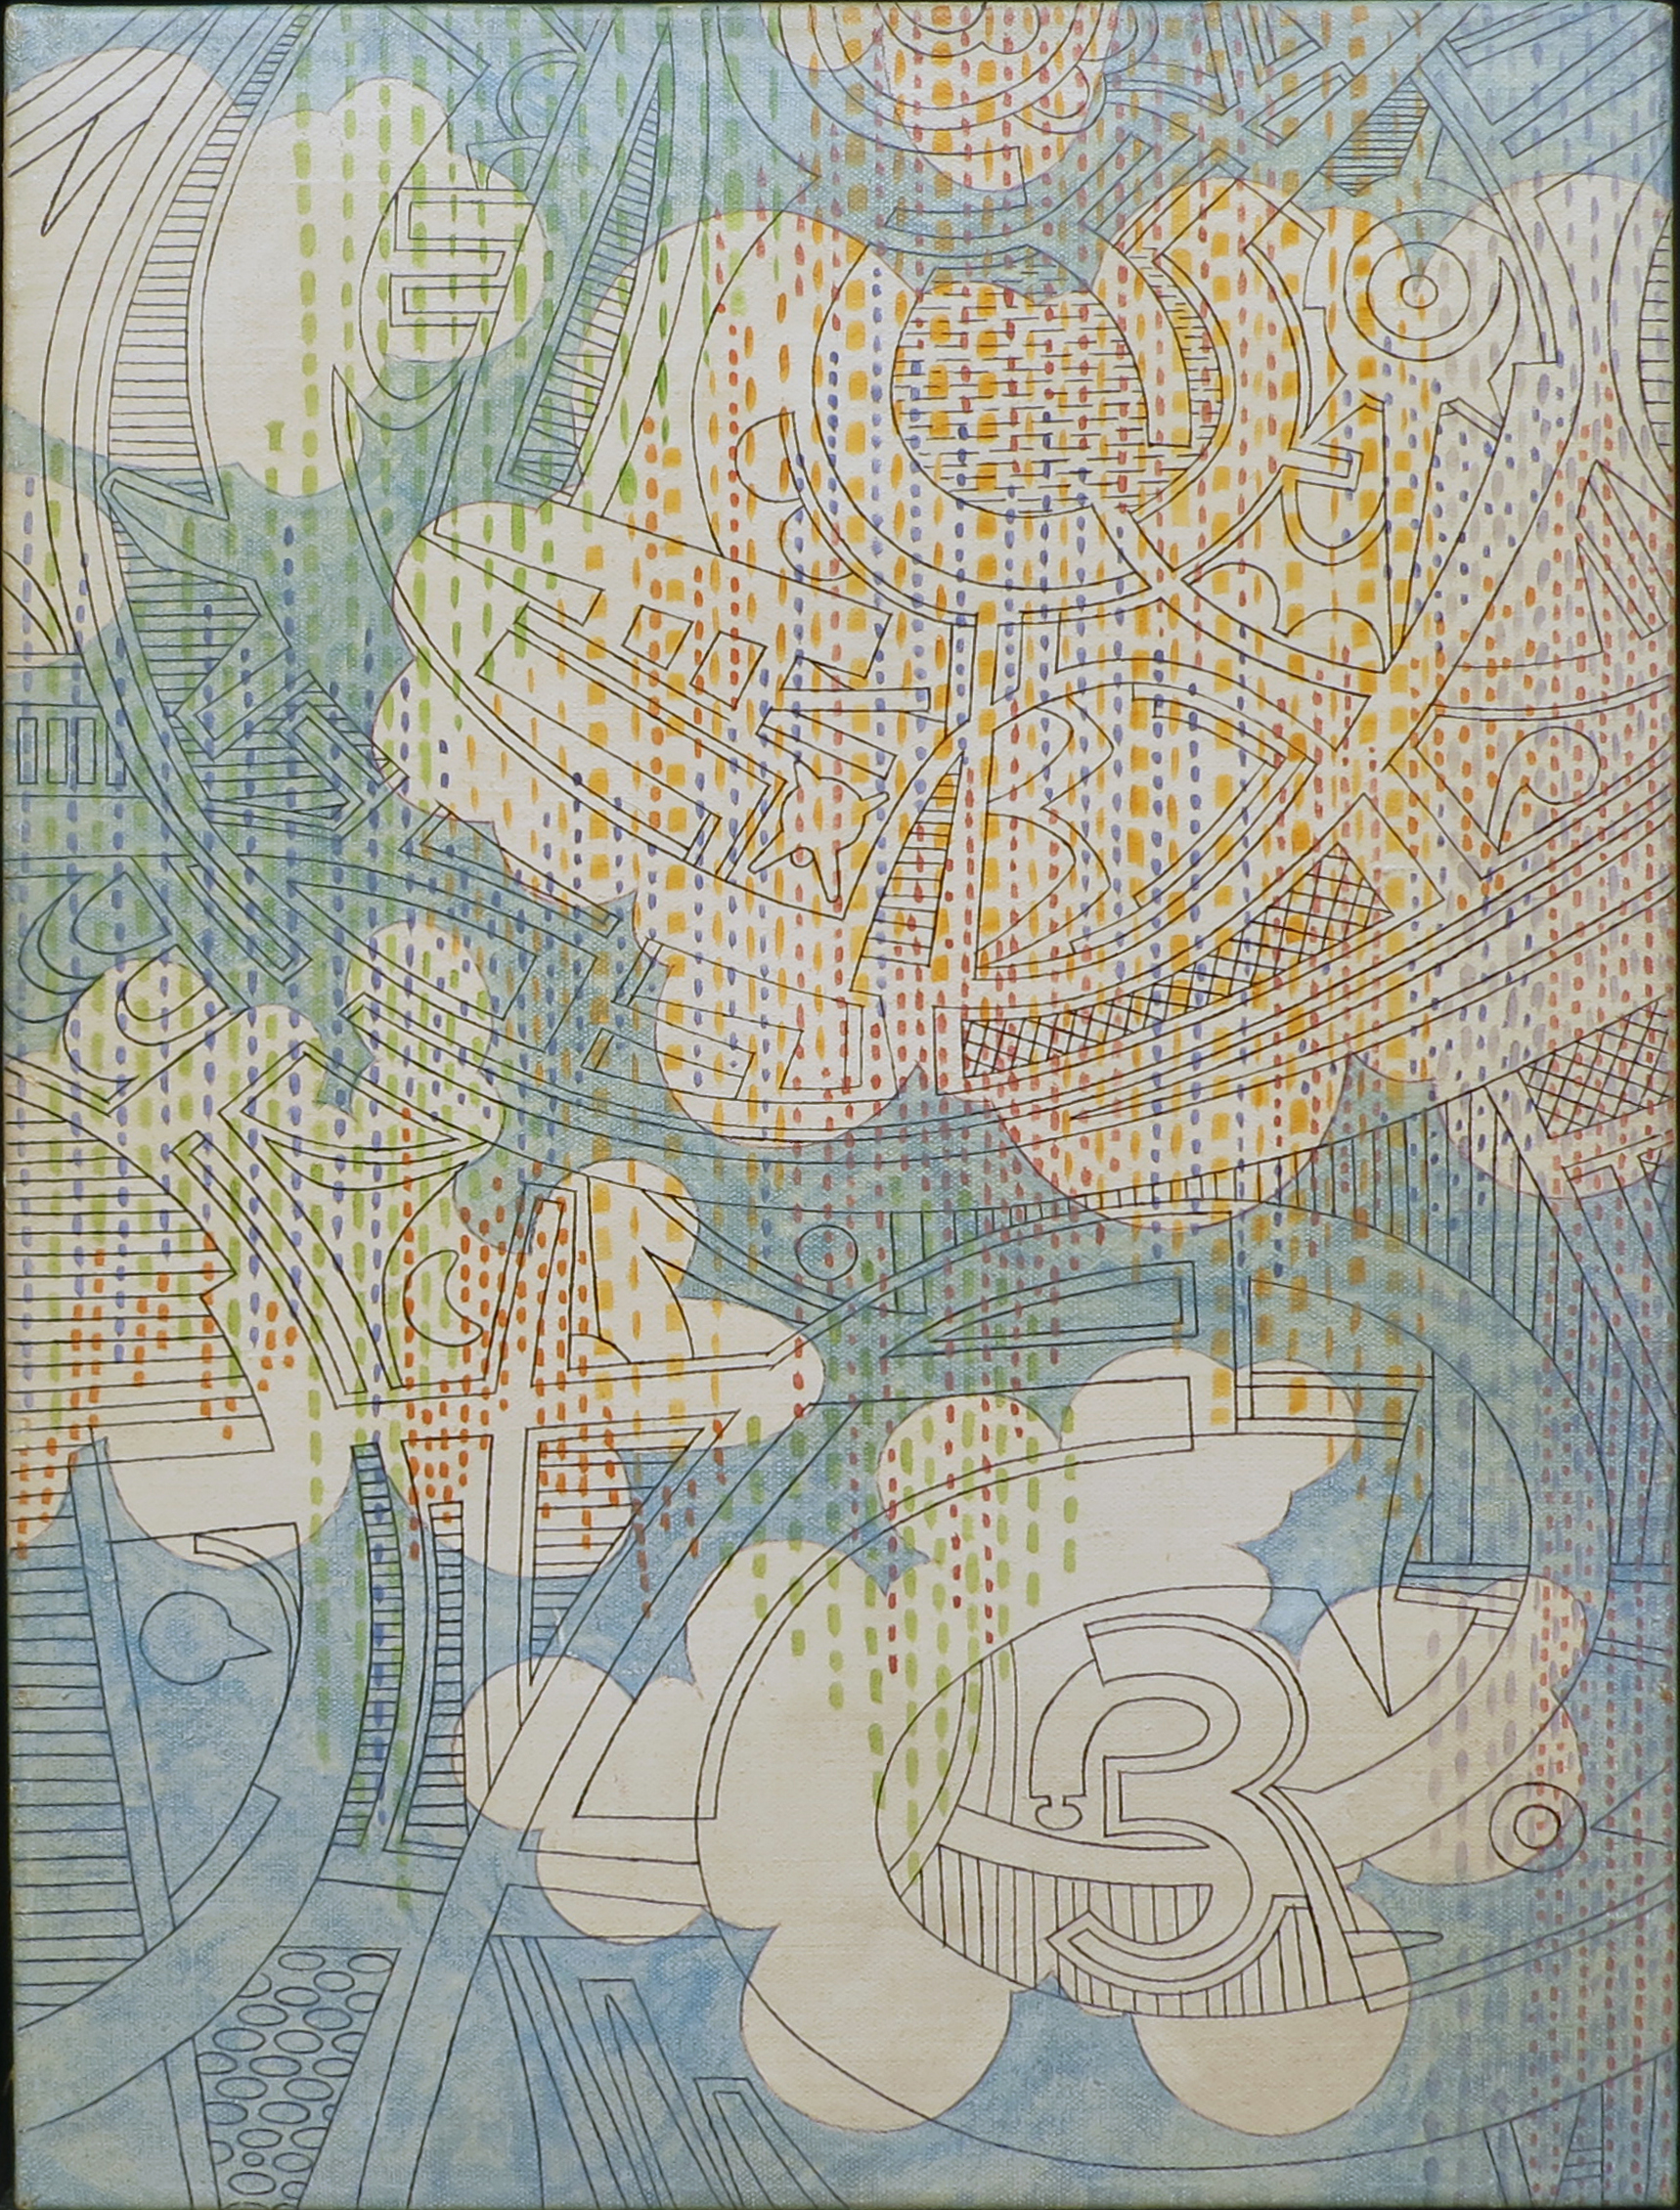 blue sky and white clouds painting with patterned drawing overlaying